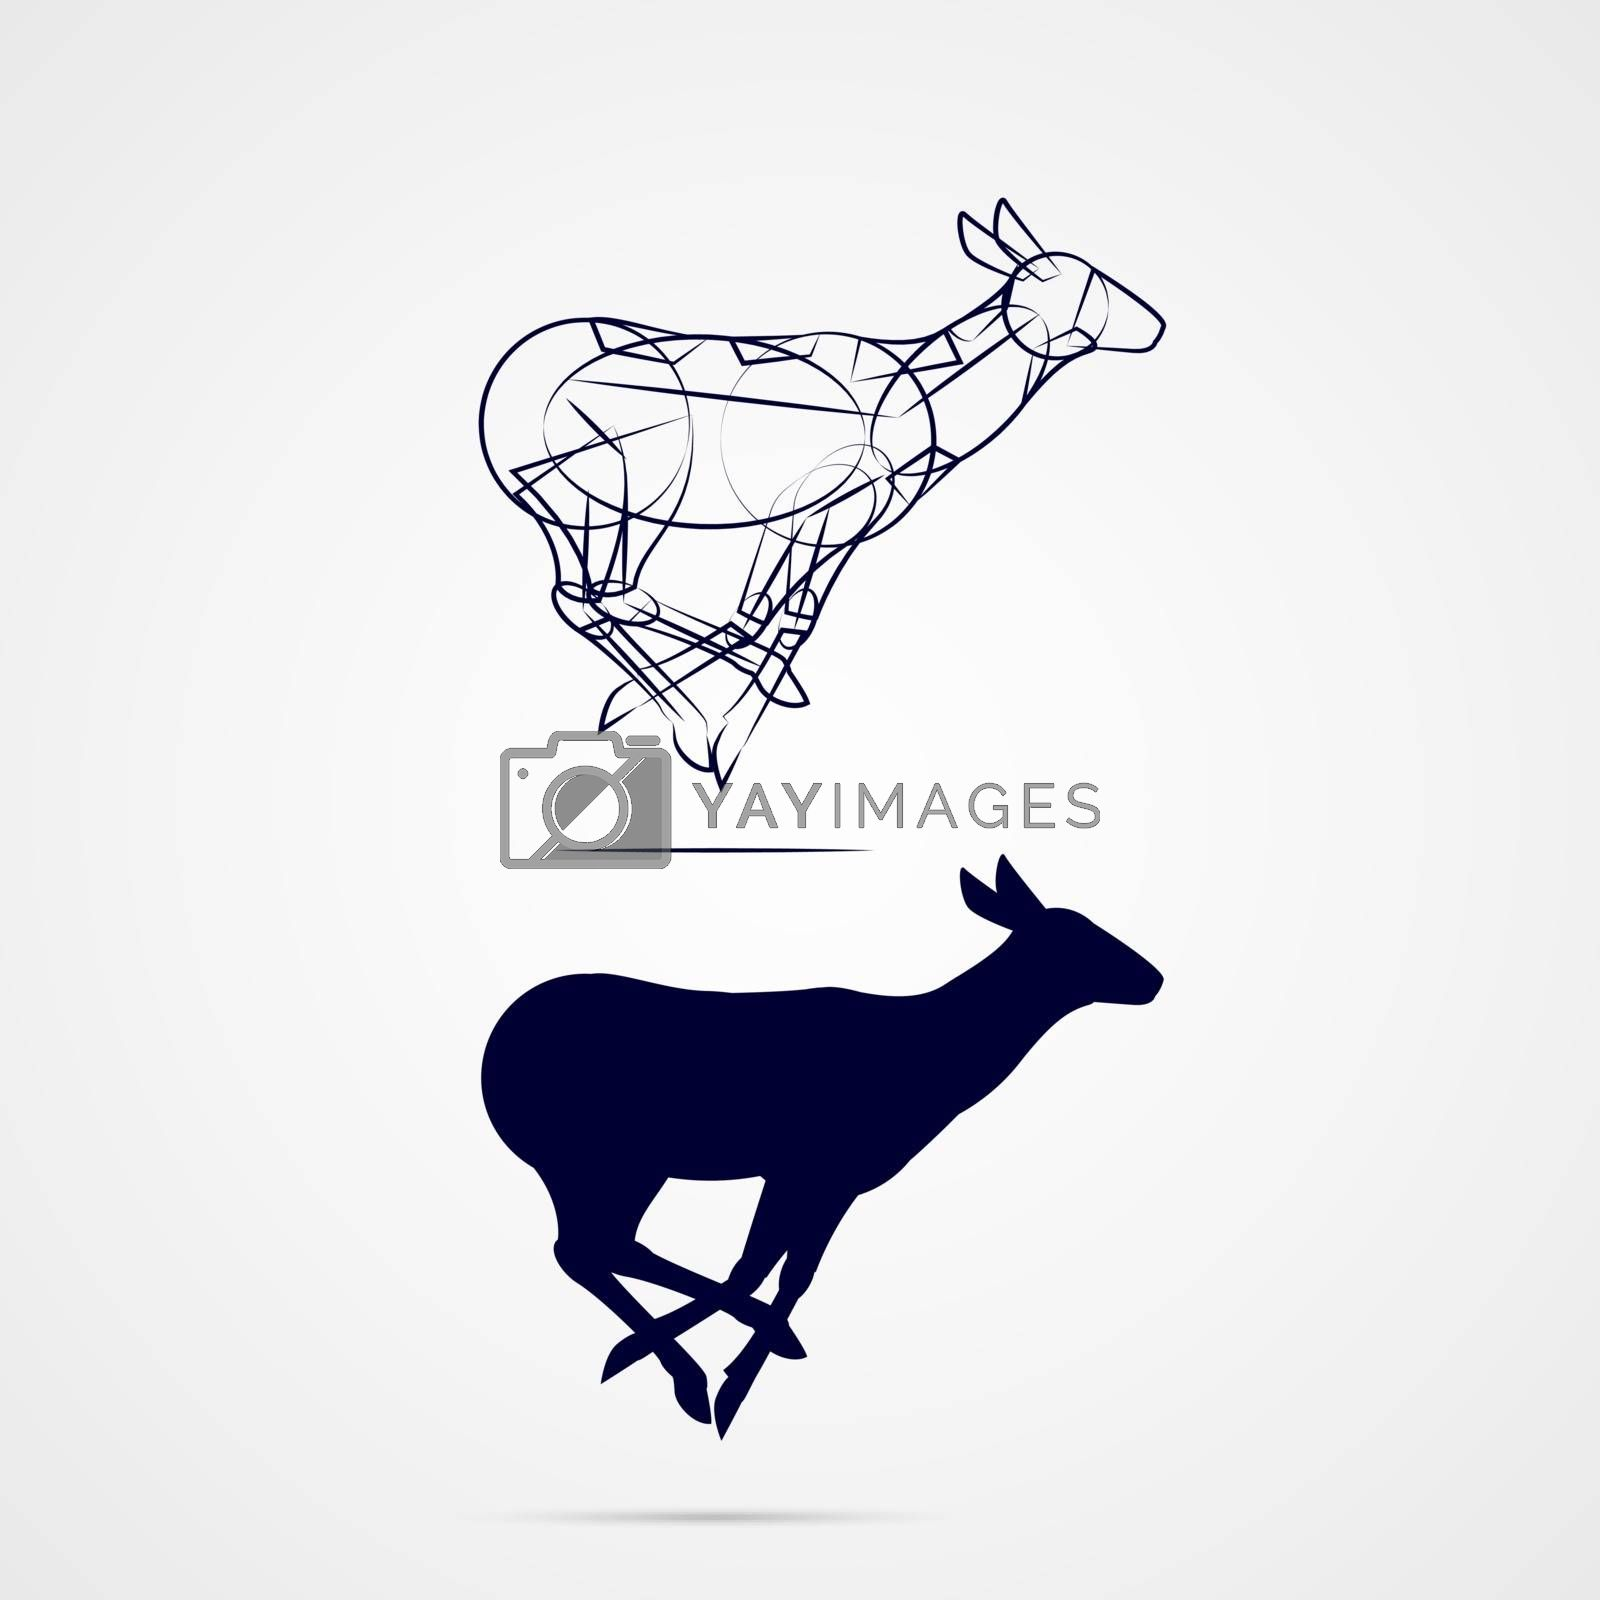 Young Deer Silhouette with Sketch Running on Gray Background